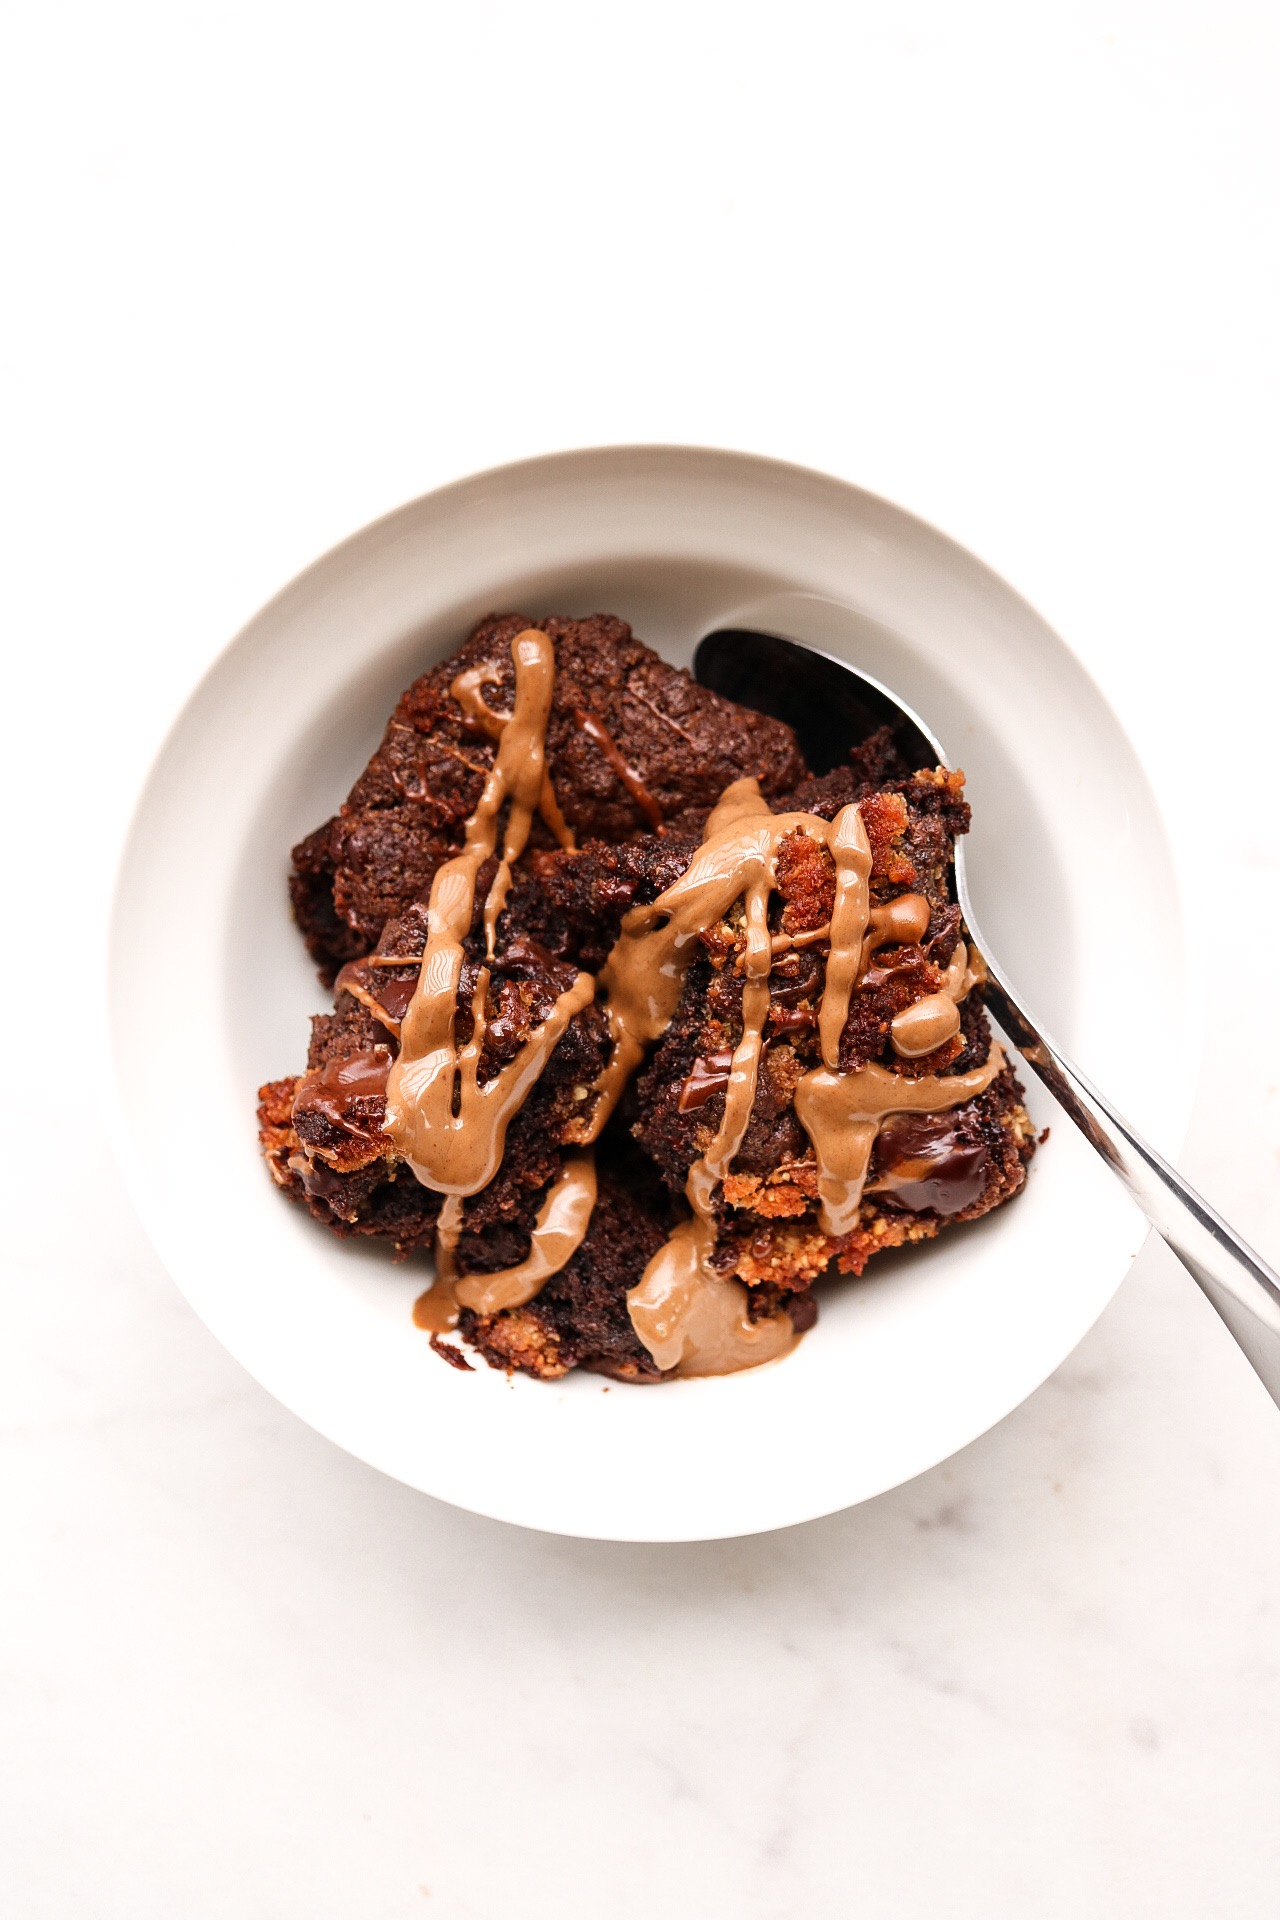 Salted Caramel Chocolate Brownies - INGREDIENTS:1 cup all purpose flour1/4 cup cacao powder1/2 tsp baking soda1 tsp salt1 flax egg1/3 cup melted coconut oil2/3 cup brown sugar3 Tbsp nut butter1 tsp apple cider vinegar1/4 cup warm water1 bag Sejoyia salted caramel coco-roons1/3 cup chopped chocolateINSTRUCTIONS:Preheat your oven to 350F. Line an 8x8 baking pan with parchment paper and set aside. In a medium bowl, whisk together the flour, cacao powder, baking soda, salt, sugar, and set aside. In another bowl, combine your flax egg, melted coconut oil, nut butter, vinegar, and warm water. Add the wet mixture to the dry and combine. Then, fold in your chopped chocolate, as well as half of the coco-roons. I just crumbled the coco-roons with my hands before folding in, but you can do it however you prefer. They're soft anyway, so they'll break easily when you're mixing. Put the batter into the baking pan and spread evenly. Crumble the remaining coco-roons on top, and add some more chopped chocolate if you like. Bake the brownies for roughly 40 minutes, more or less if needed.